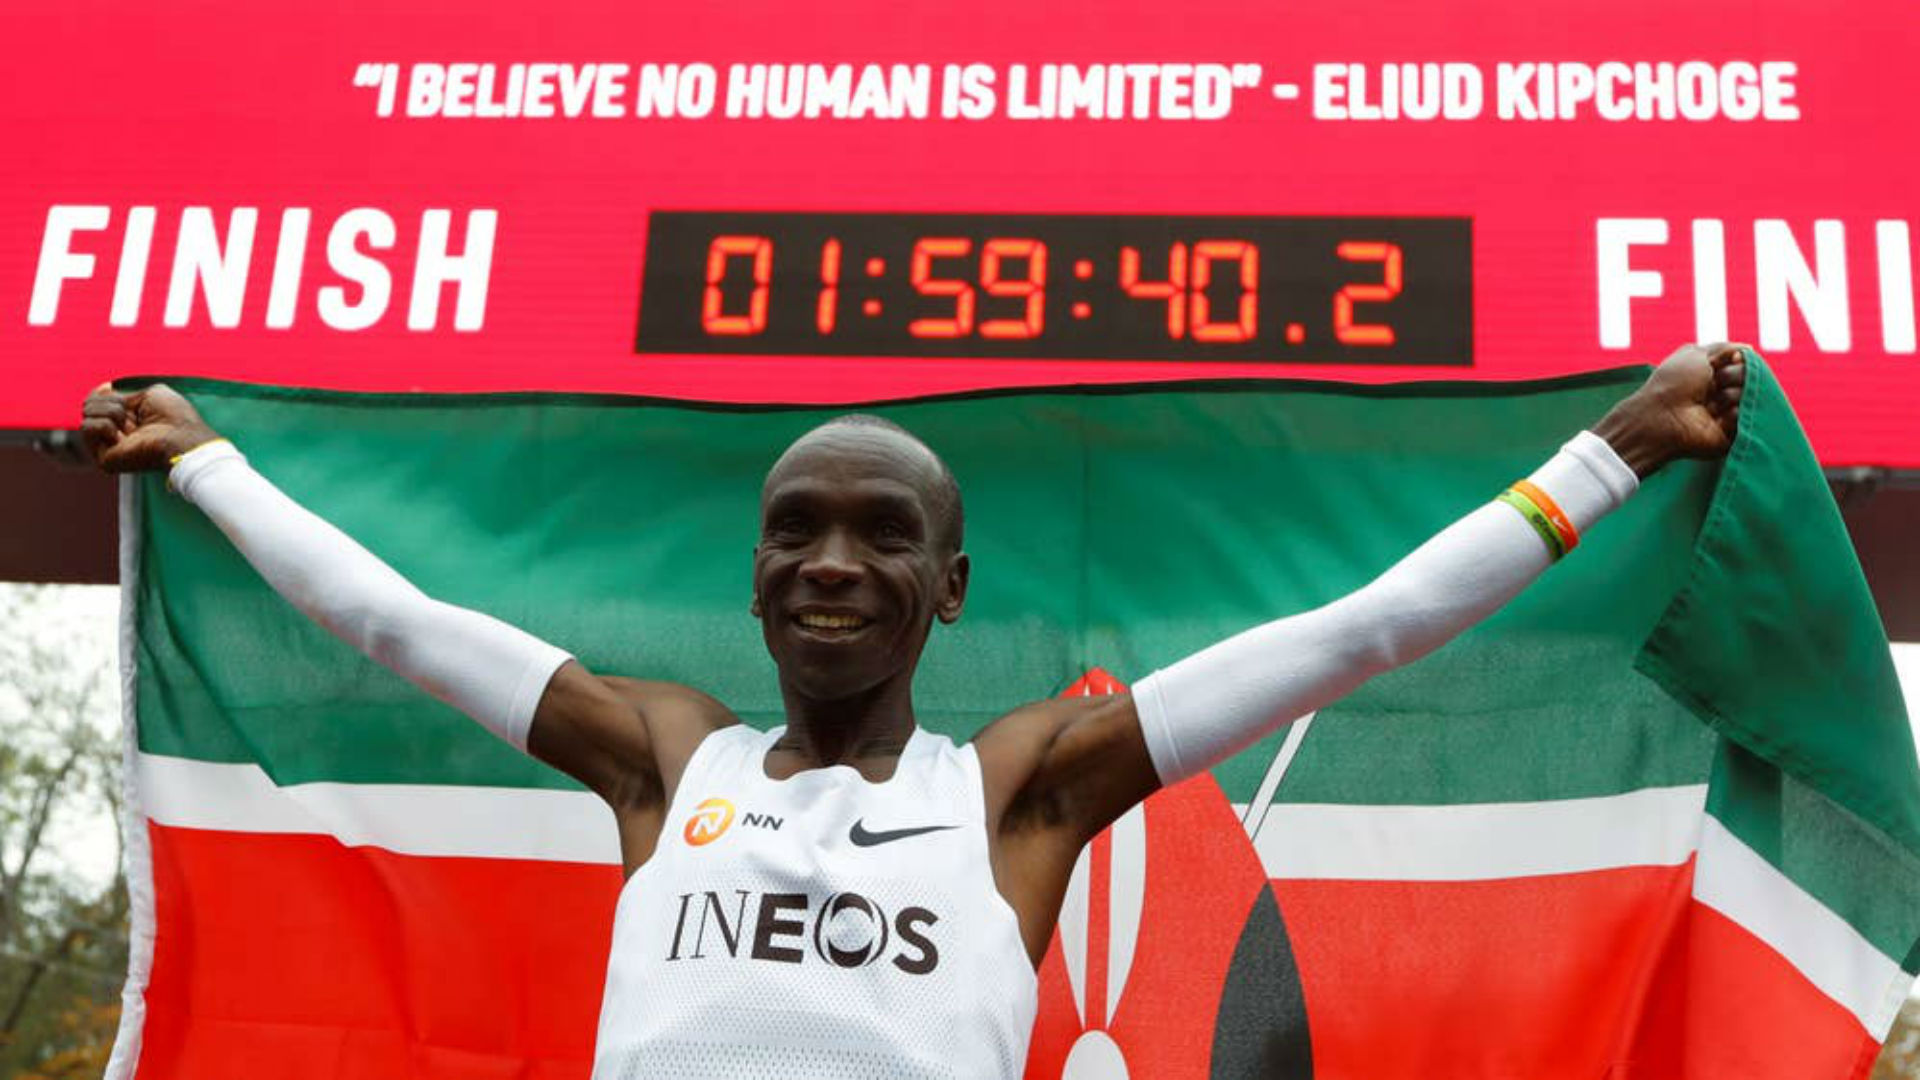 Kipchoge's Olympic heroics can inspire AFC Leopards to win the title - Aussems